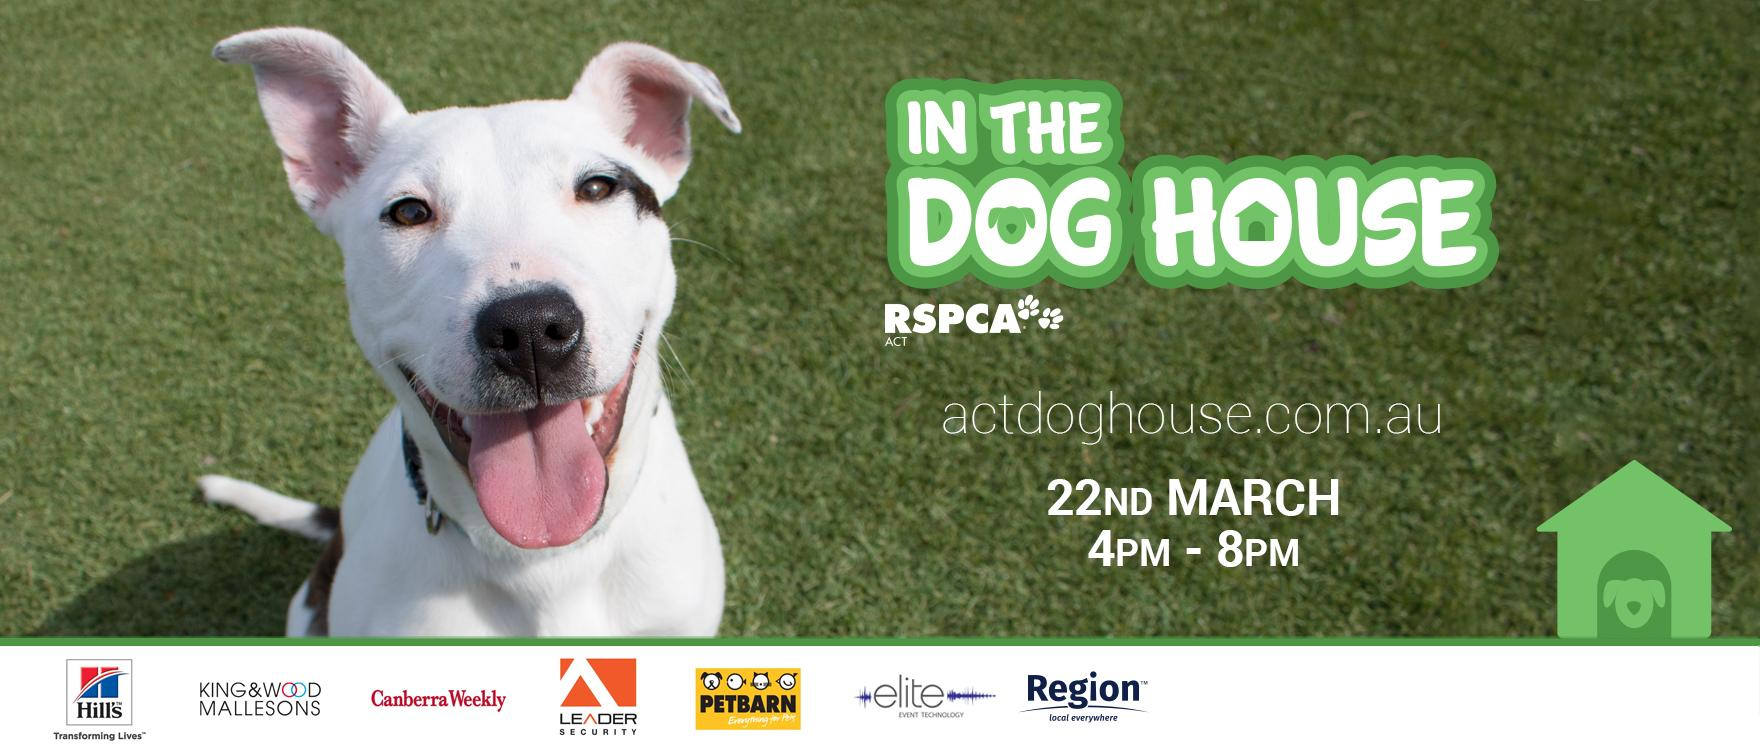 Register Now to go 'In the Dog House'